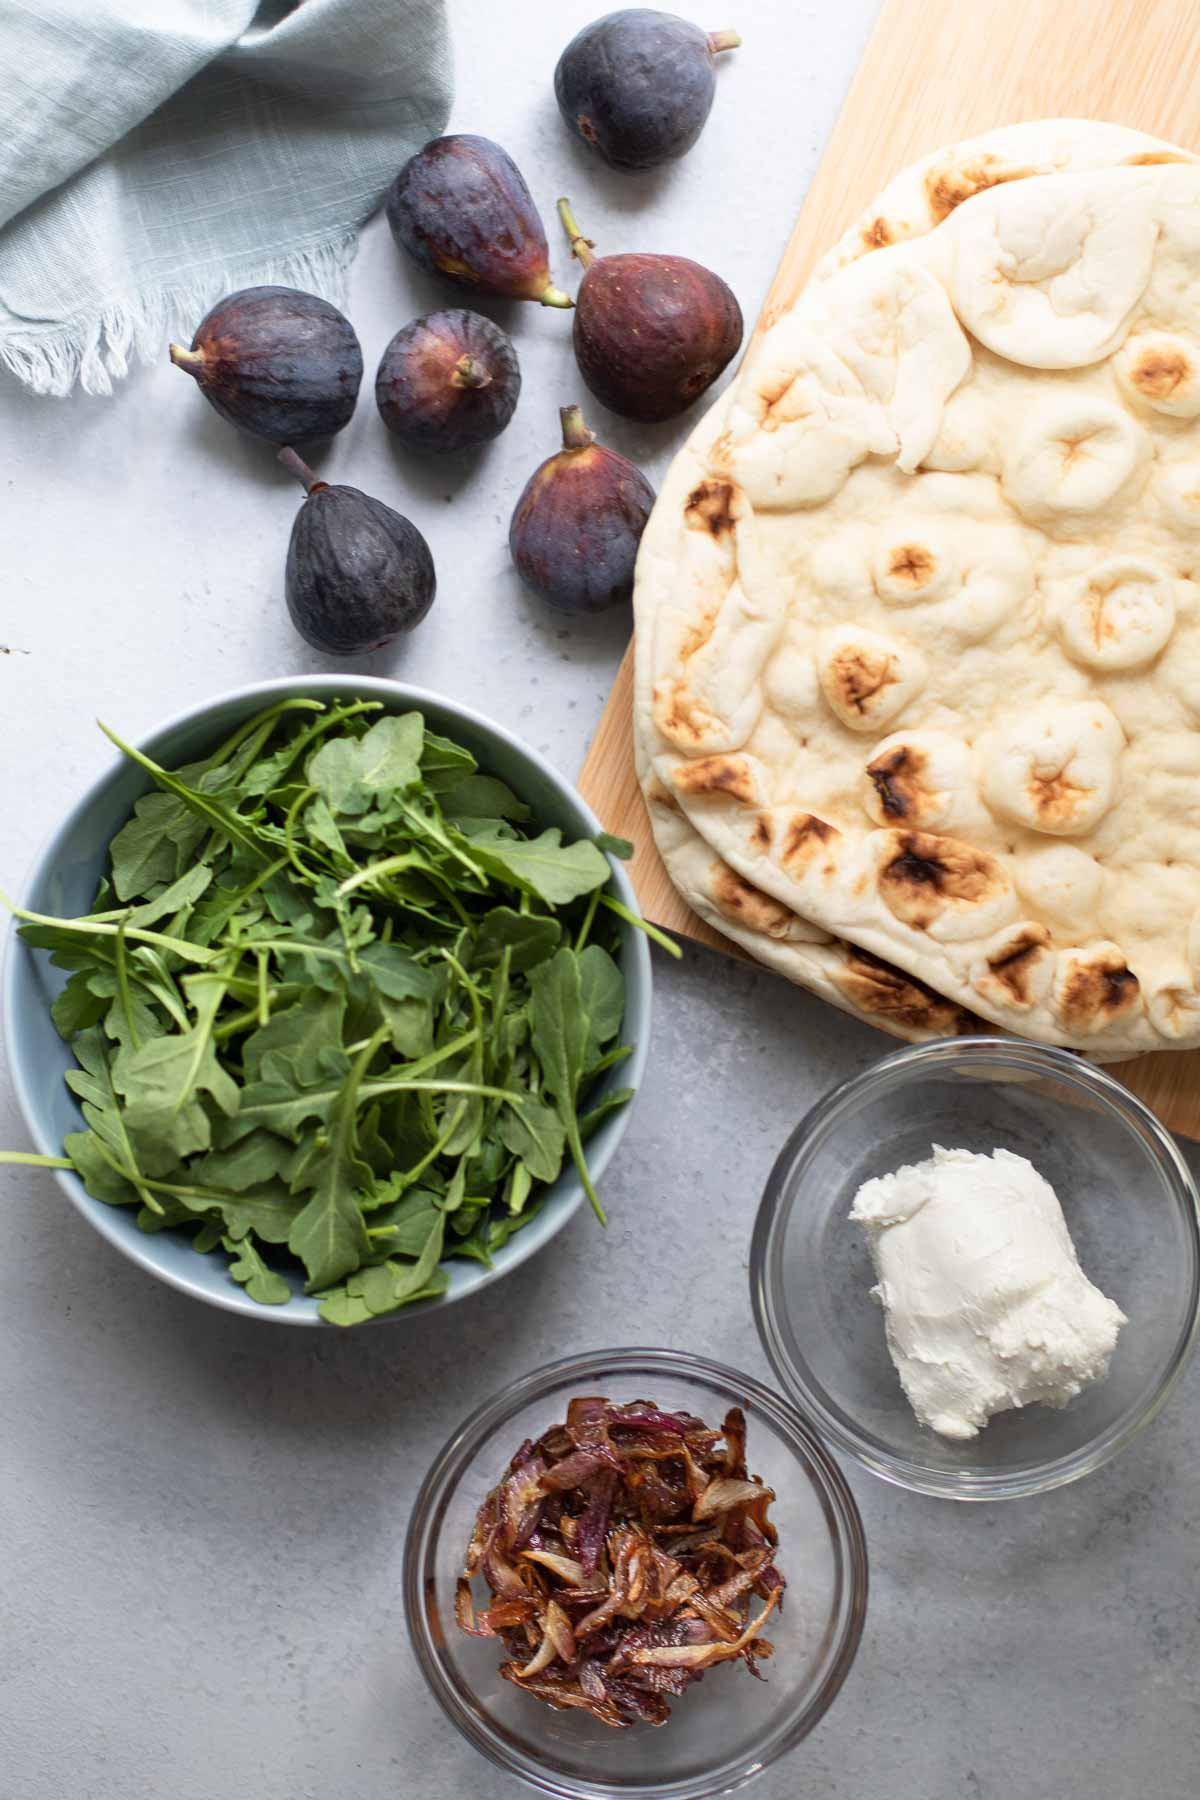 Figs, arugula in a blue bowl, caramelized onions and goat cheese in clear bowls, naan on a cutting board.